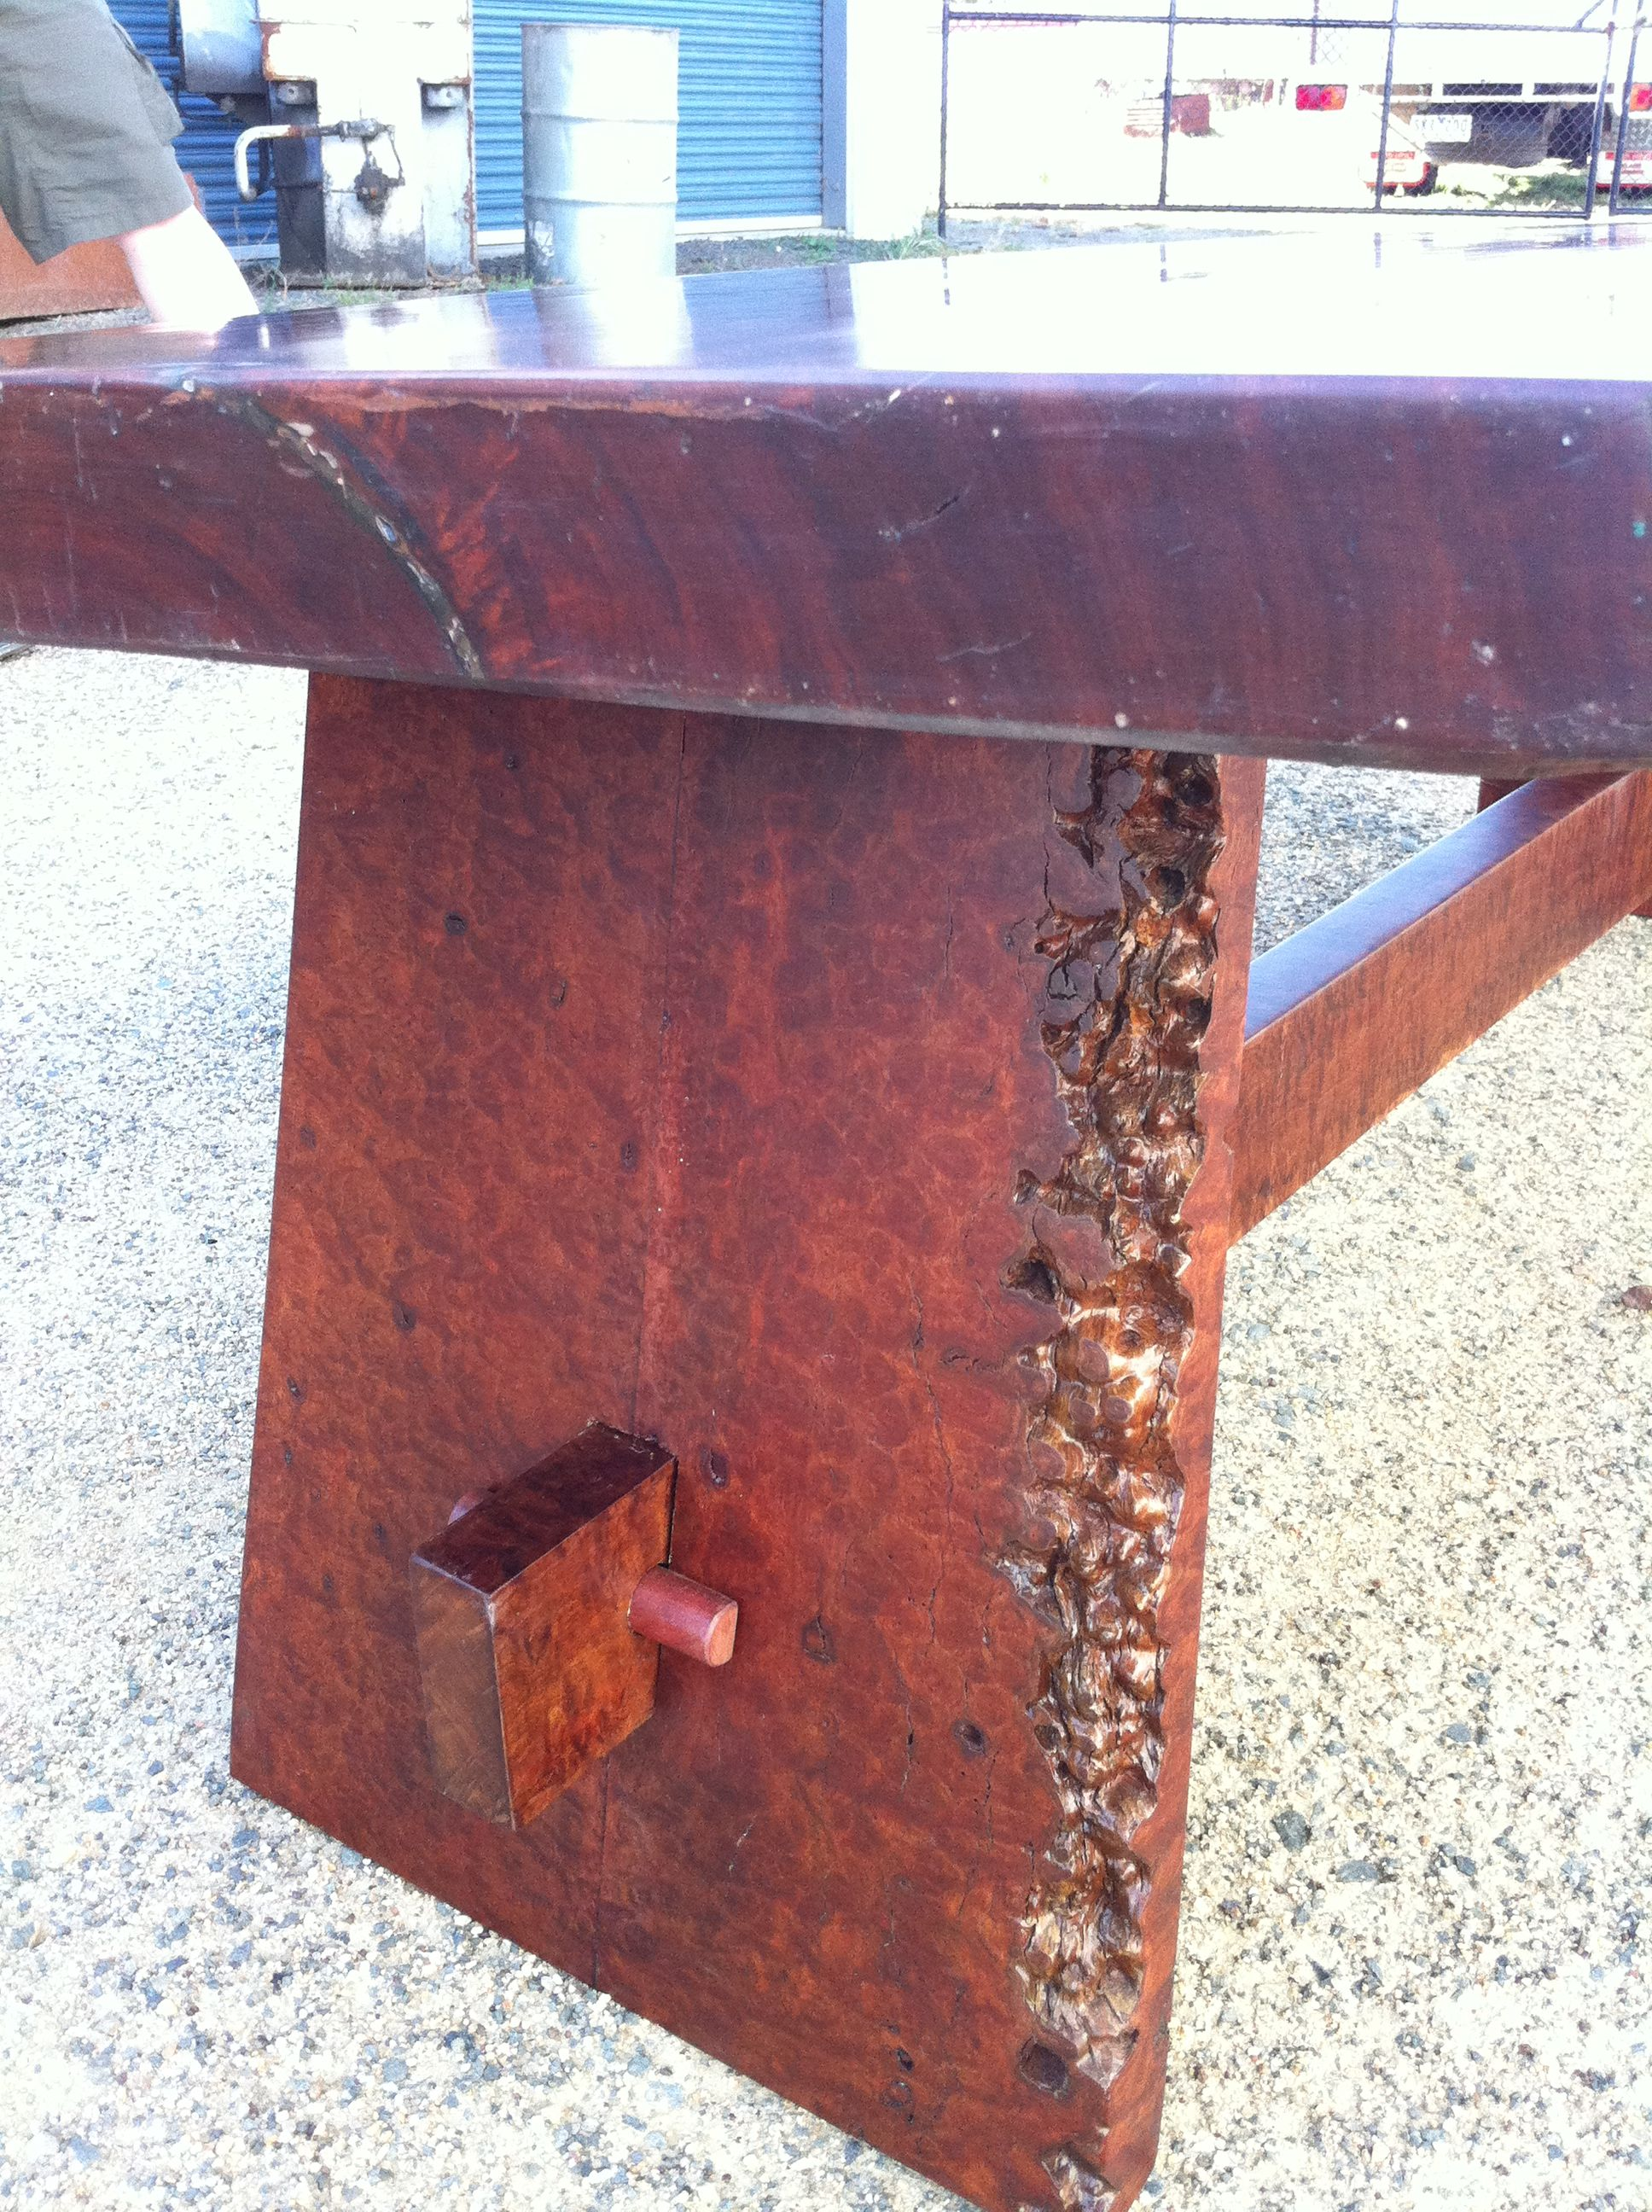 Tenon and Pin on Live edge Redgum Coffee Table Handmade by Prickle